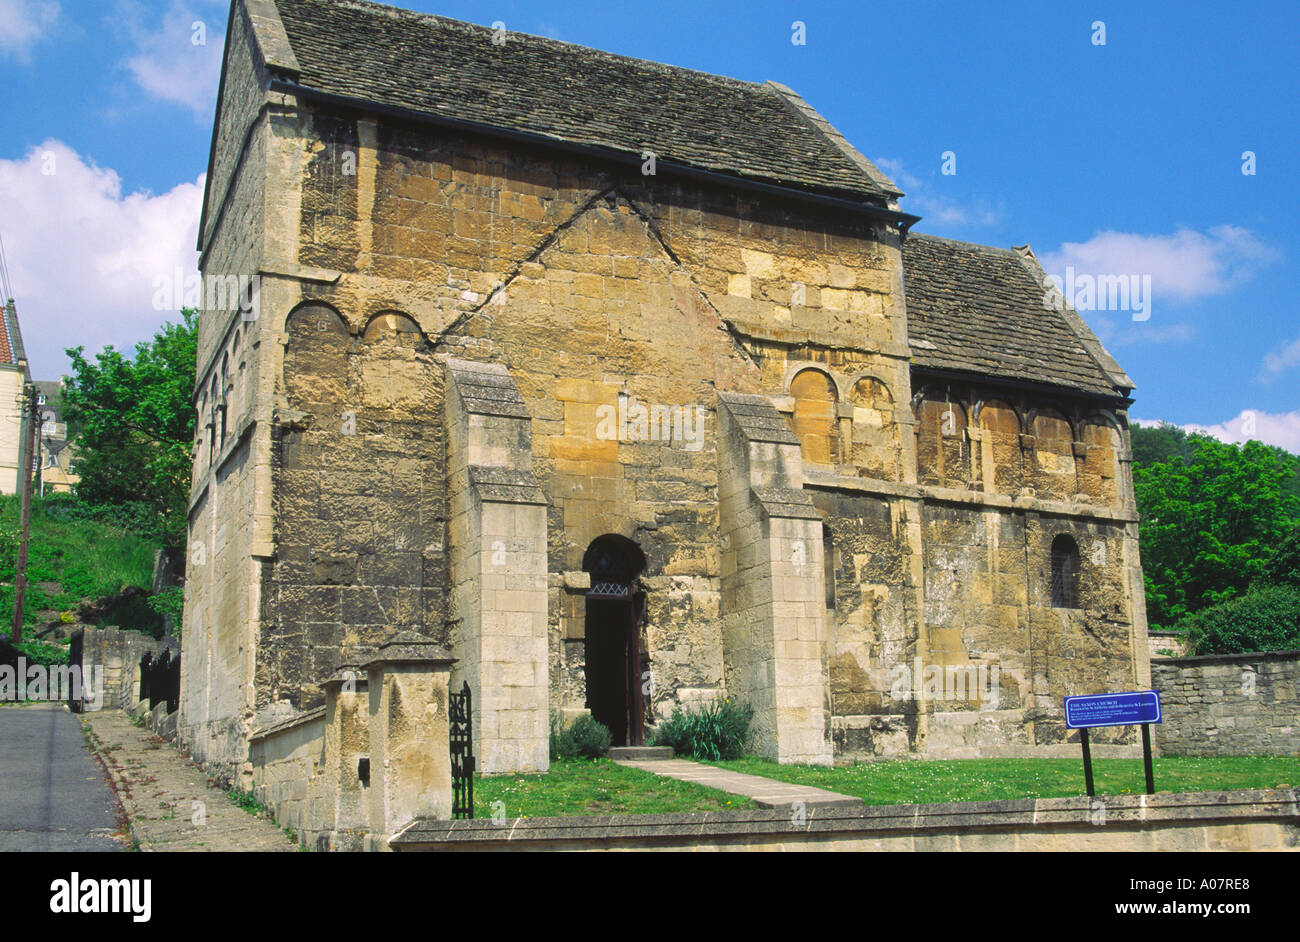 Saxon church of St Laurence founded by St Aldhelm Bradford on Avon Wiltshire England Stock Photo